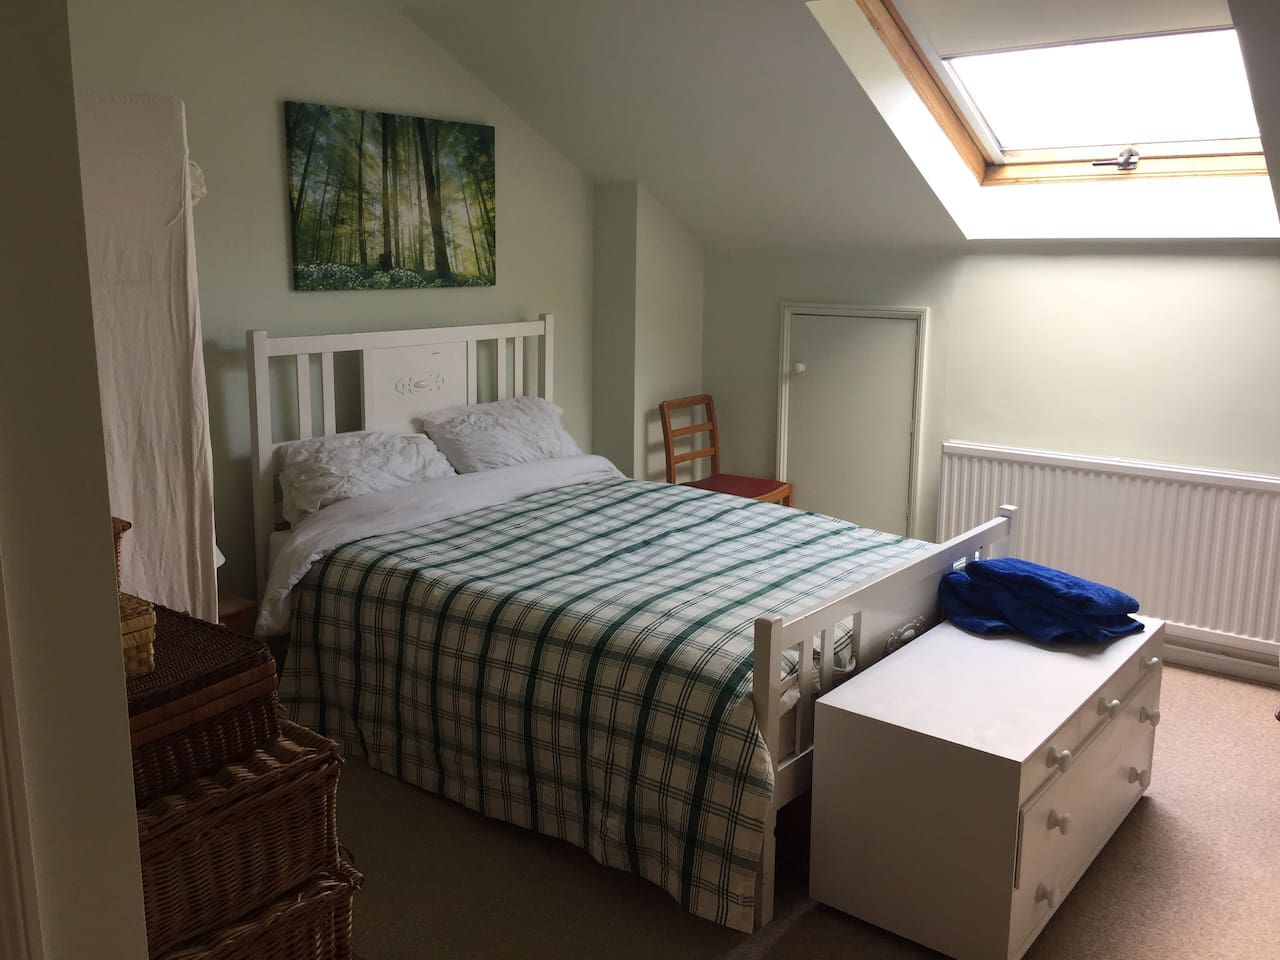 Double bed in loft room with full height ceilings and large skylight